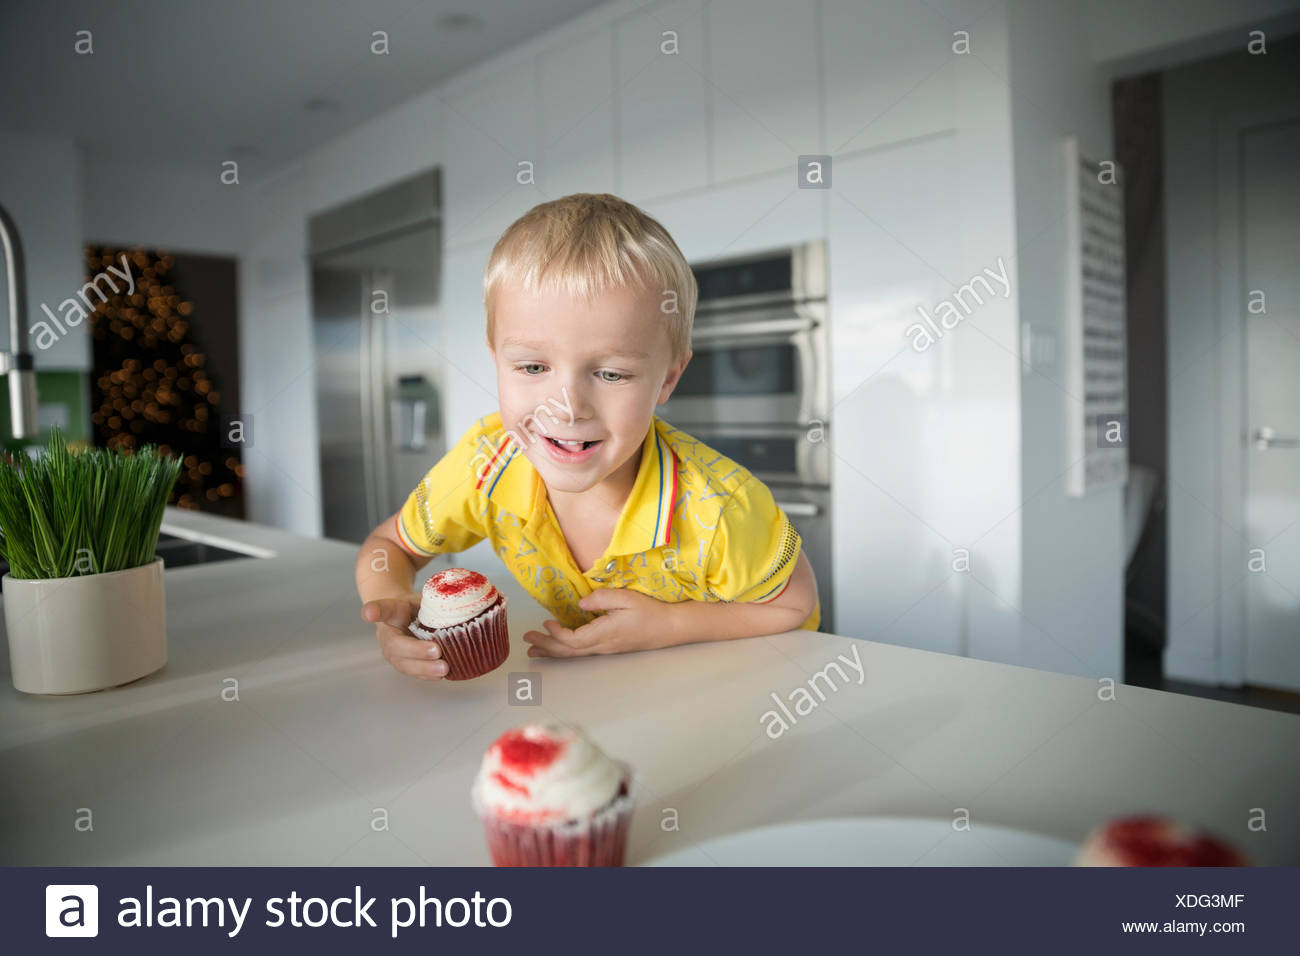 Eager boy reaching for cupcake on kitchen island - Stock Image